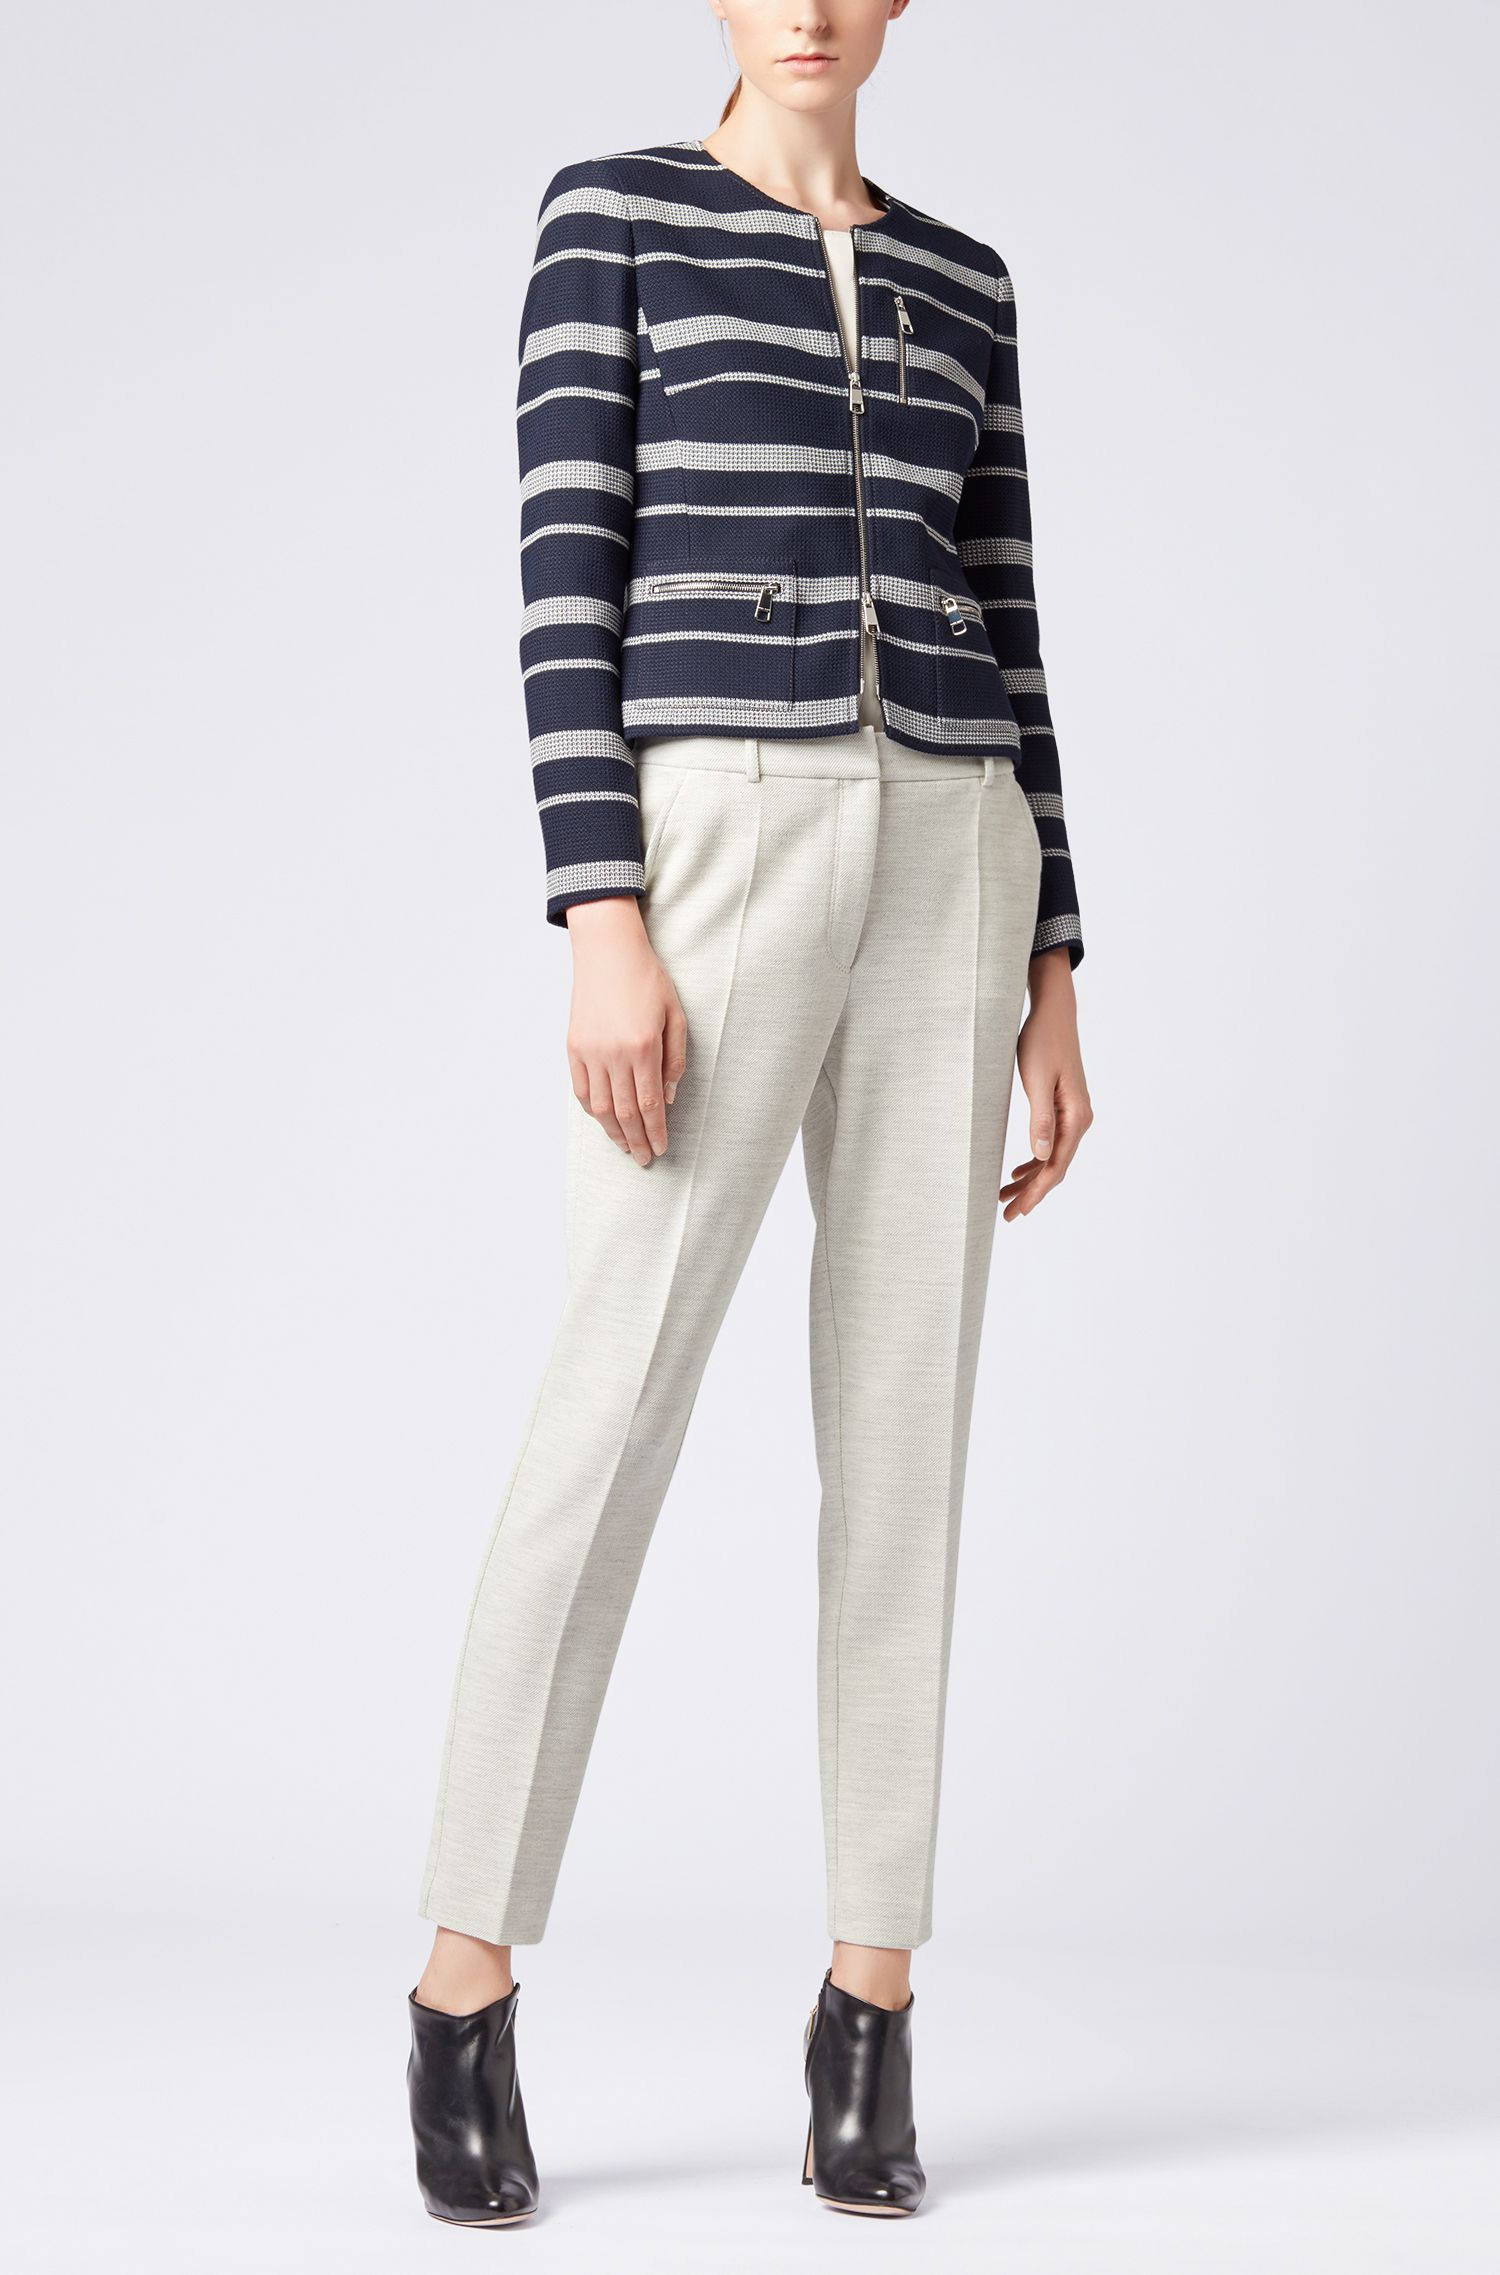 Slim-fit blazer with textured stripes and zipper detail, Patterned